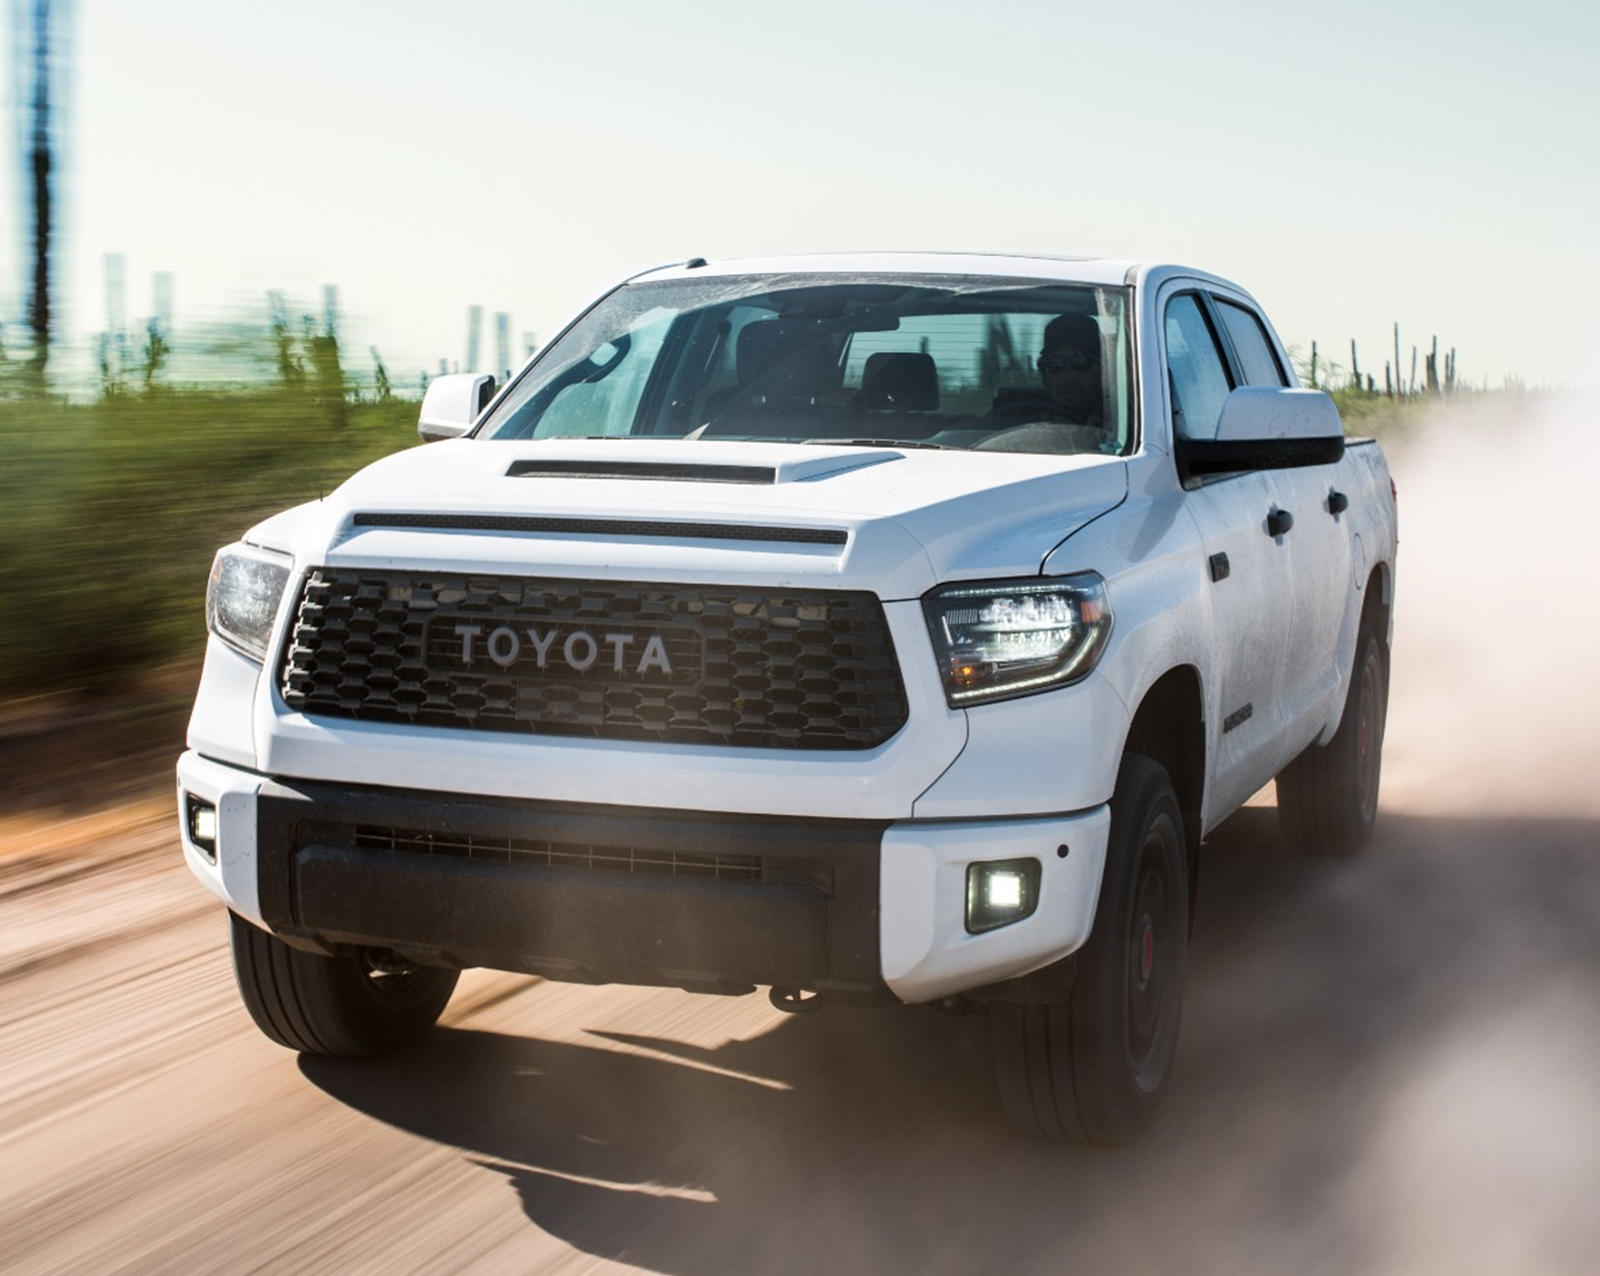 Toyota - cover